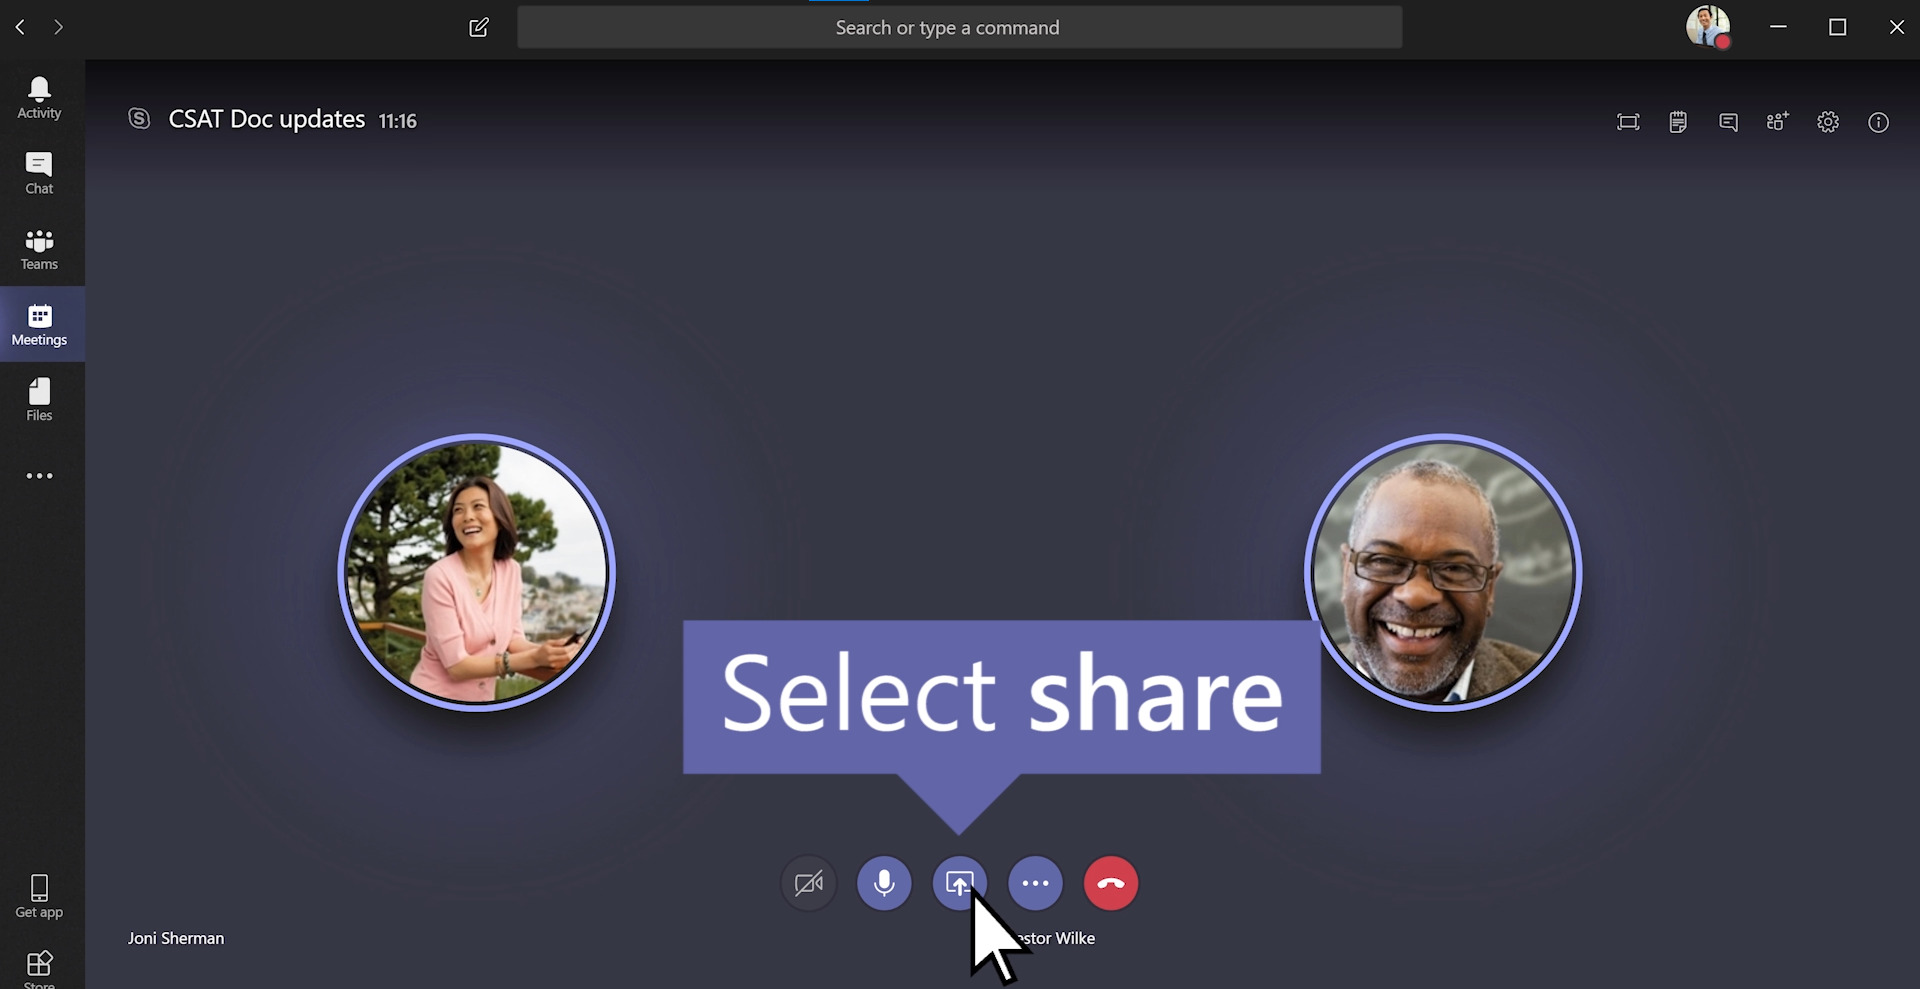 How to share your screen in Microsoft Teams